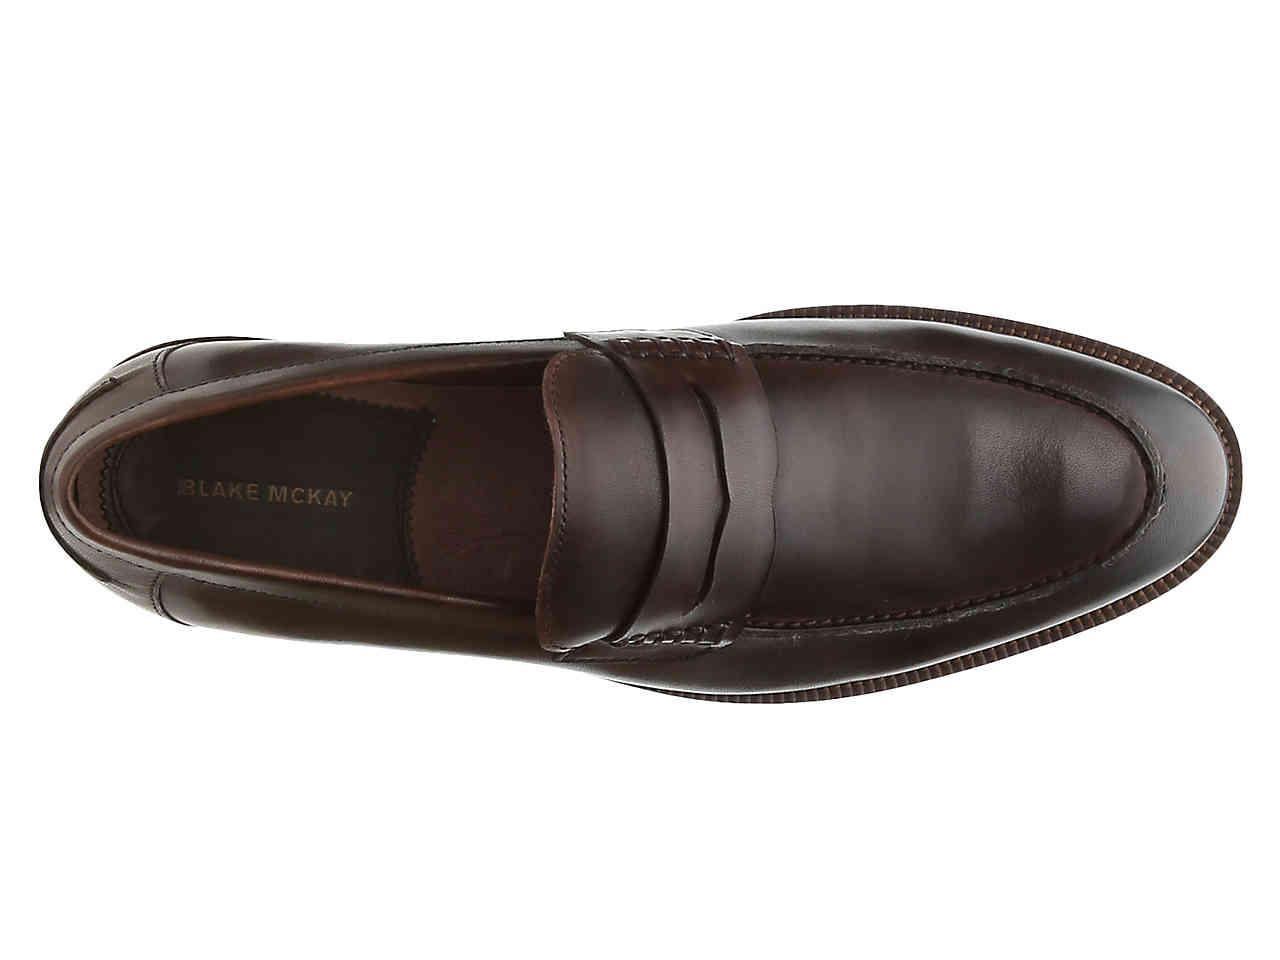 98e2df27875 Lyst - Blake McKay T16 Penny Loafer in Brown for Men